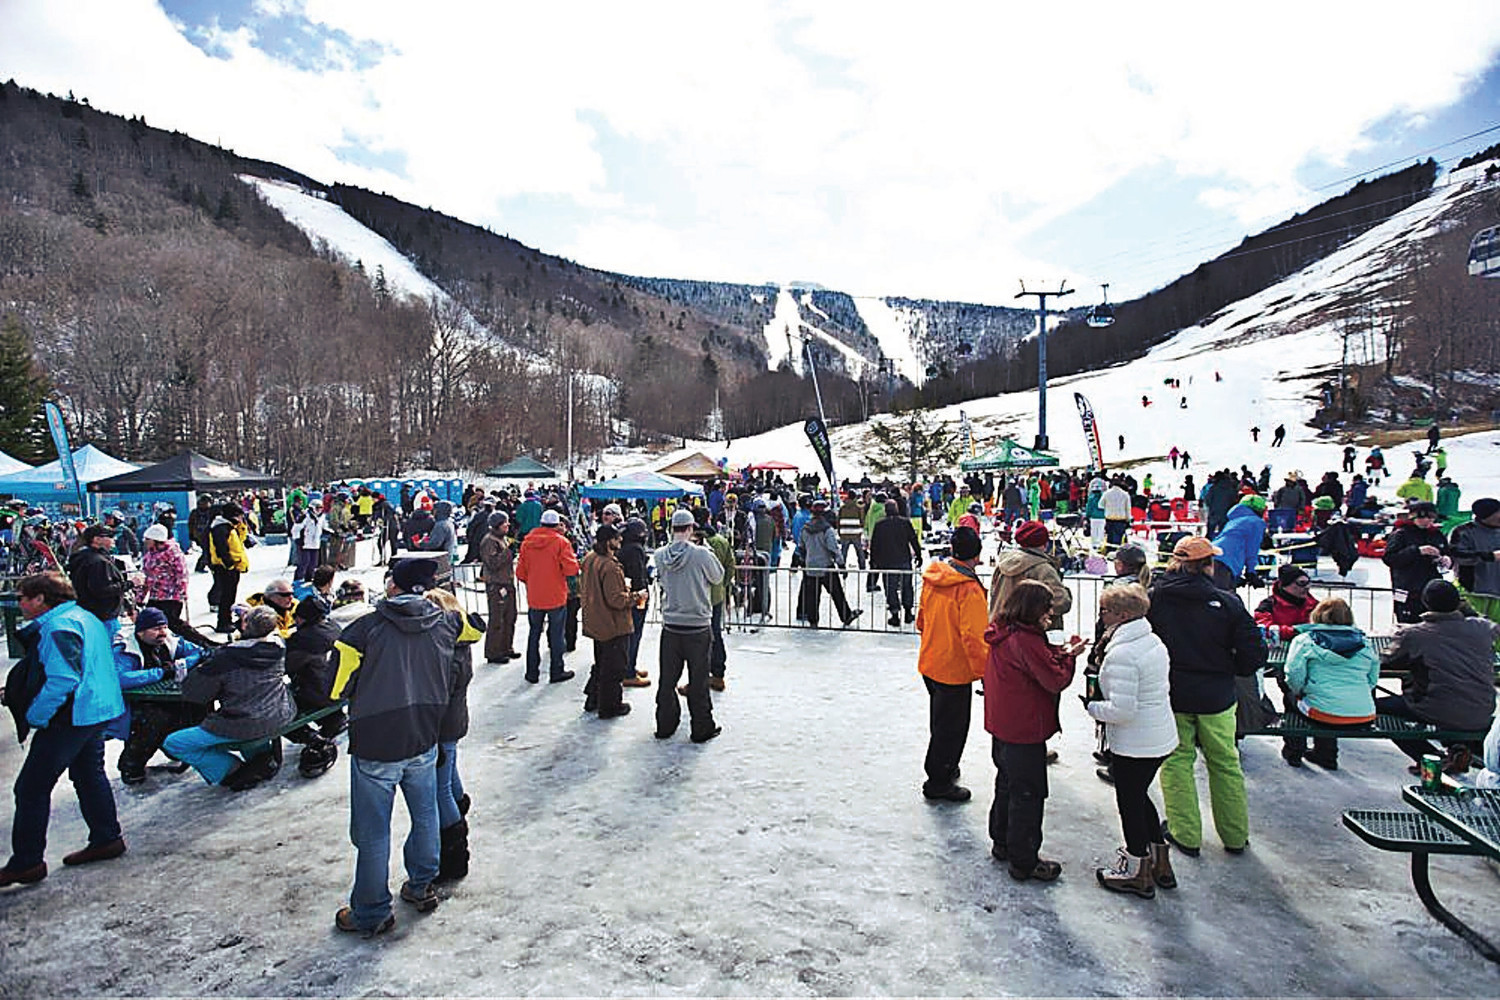 Vermont Brewers Festival - Where: Killington, VermontWhen: March 24What: For the first year ever, Killington will be hosting the Vermont Brewers Festival at the base of the K-1 lodge. Thirty breweries will be represented, so we're sure you'll find a way to keep warm.